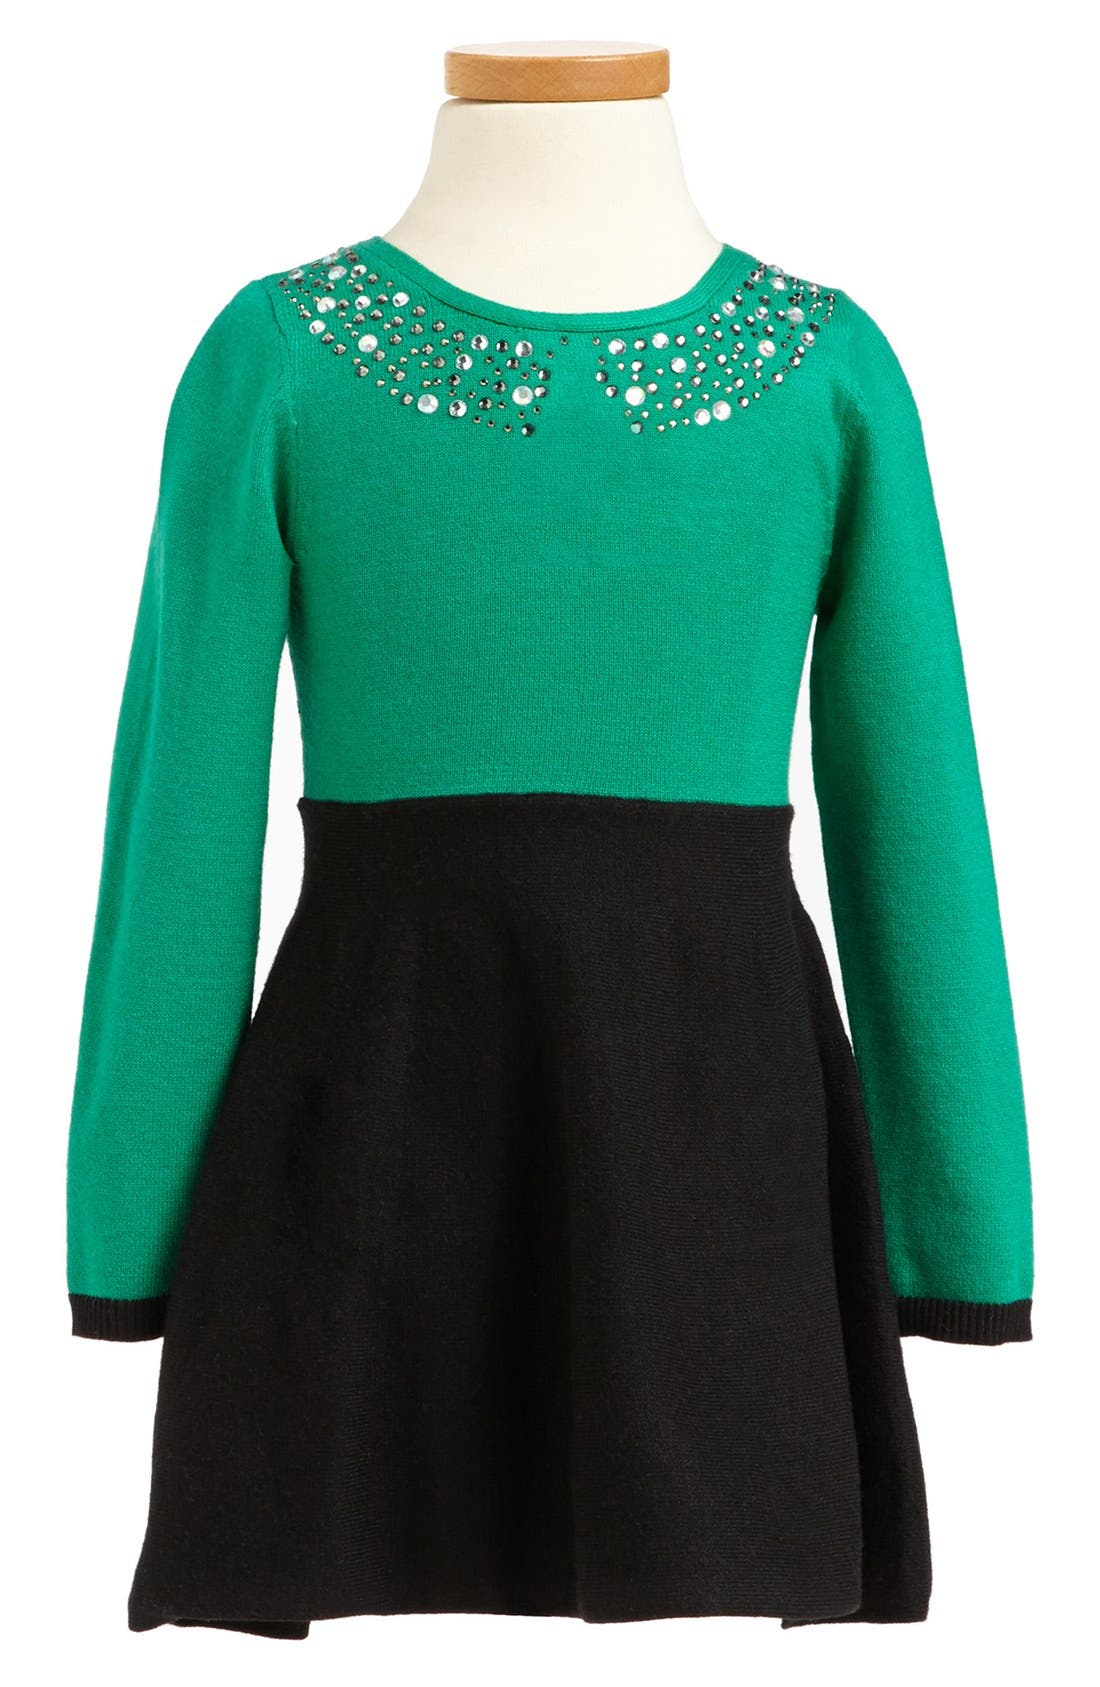 Alternate Image 1 Selected - Milly Minis Rhinestone Collar Dress (Toddler Girls, Little Girls & Big Girls)